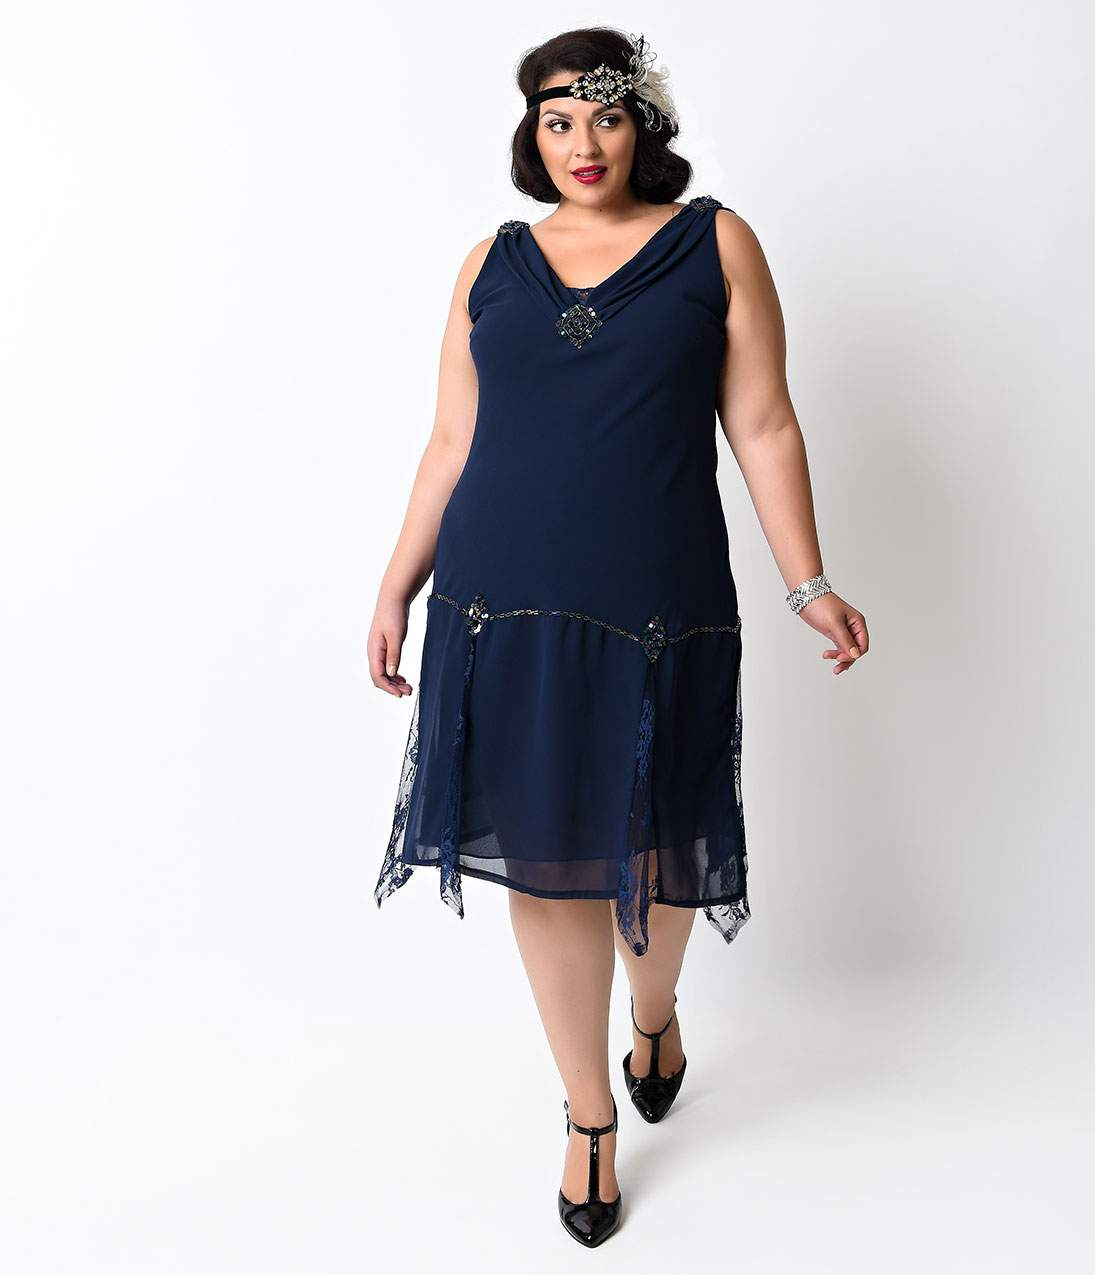 20s Dresses | 1920s Dresses for Sale Unique Vintage Plus Size Navy Hemingway Flapper Dress $48.00 AT vintagedancer.com